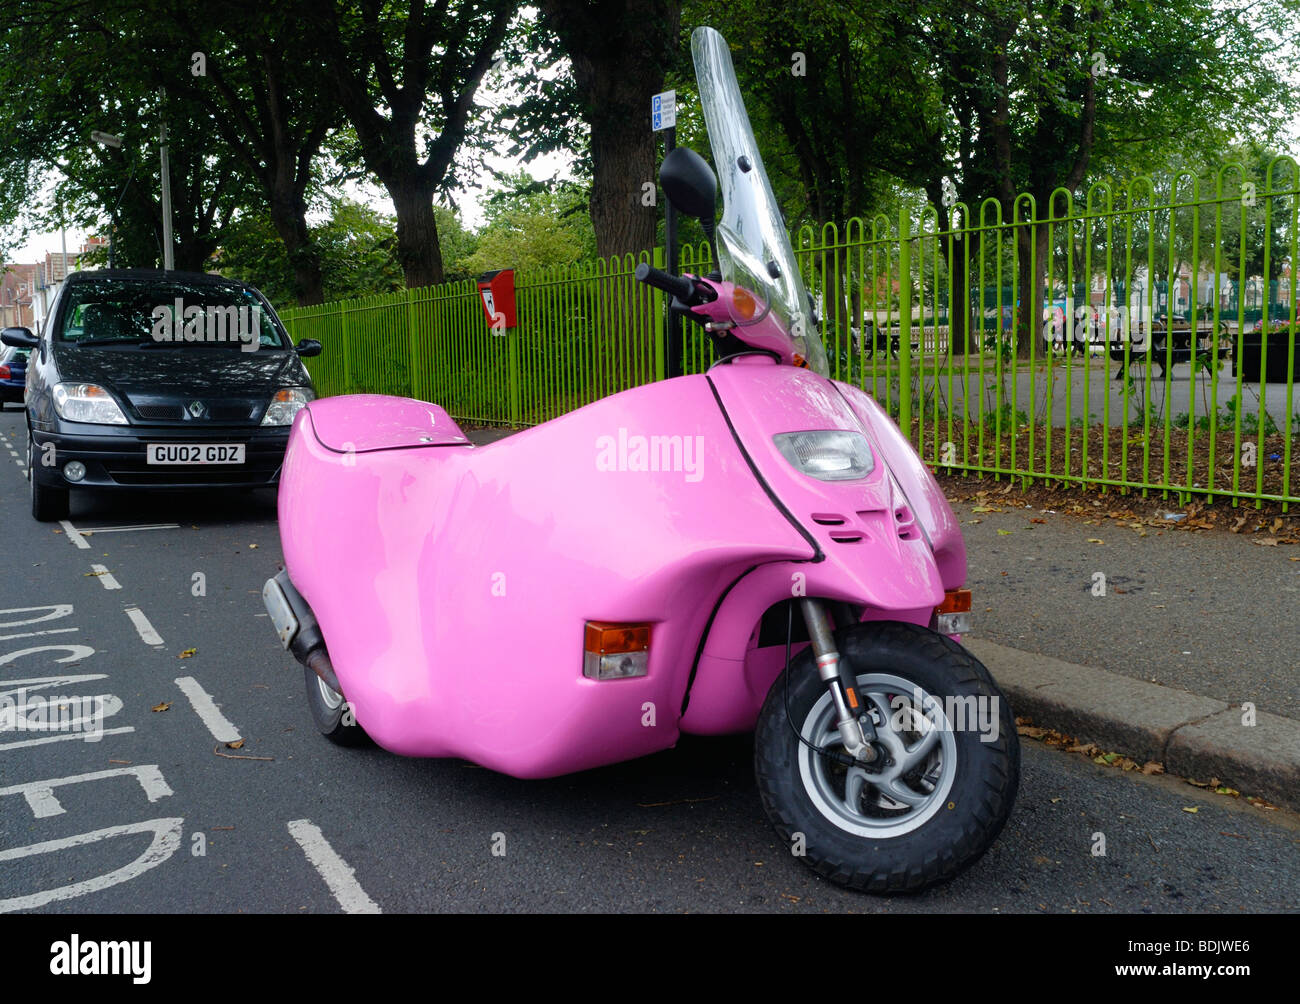 A pink disability scooter parked in a disabled bay - Stock Image